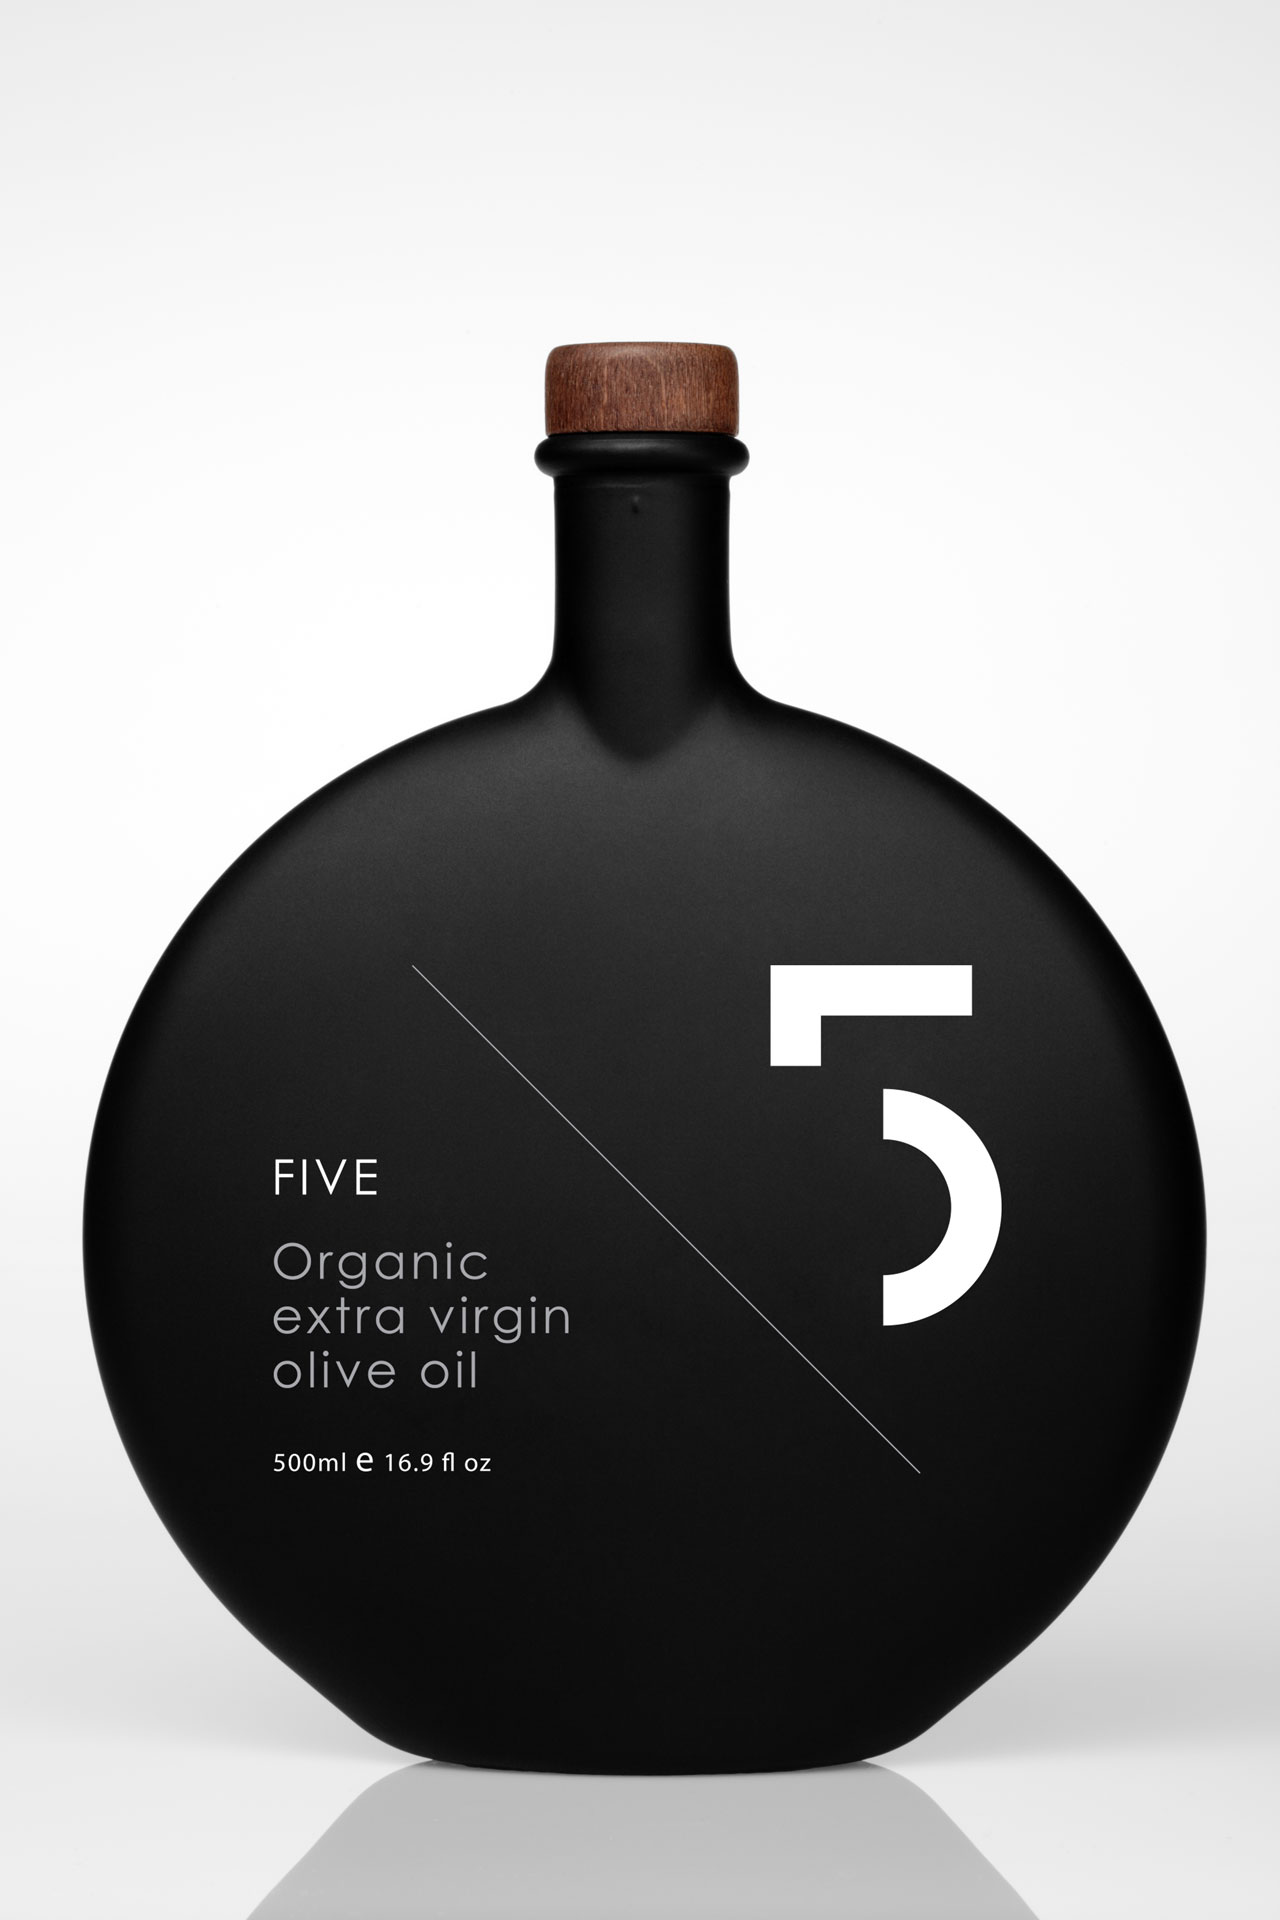 5 OLIVE OIL: INDULGE YOUR 5 SENSES Creative Direction: Dimitris Panagiotidis.Photography: Stefanos Tsakiris.Food Stylist: Kiriaki Sidiropoulou.